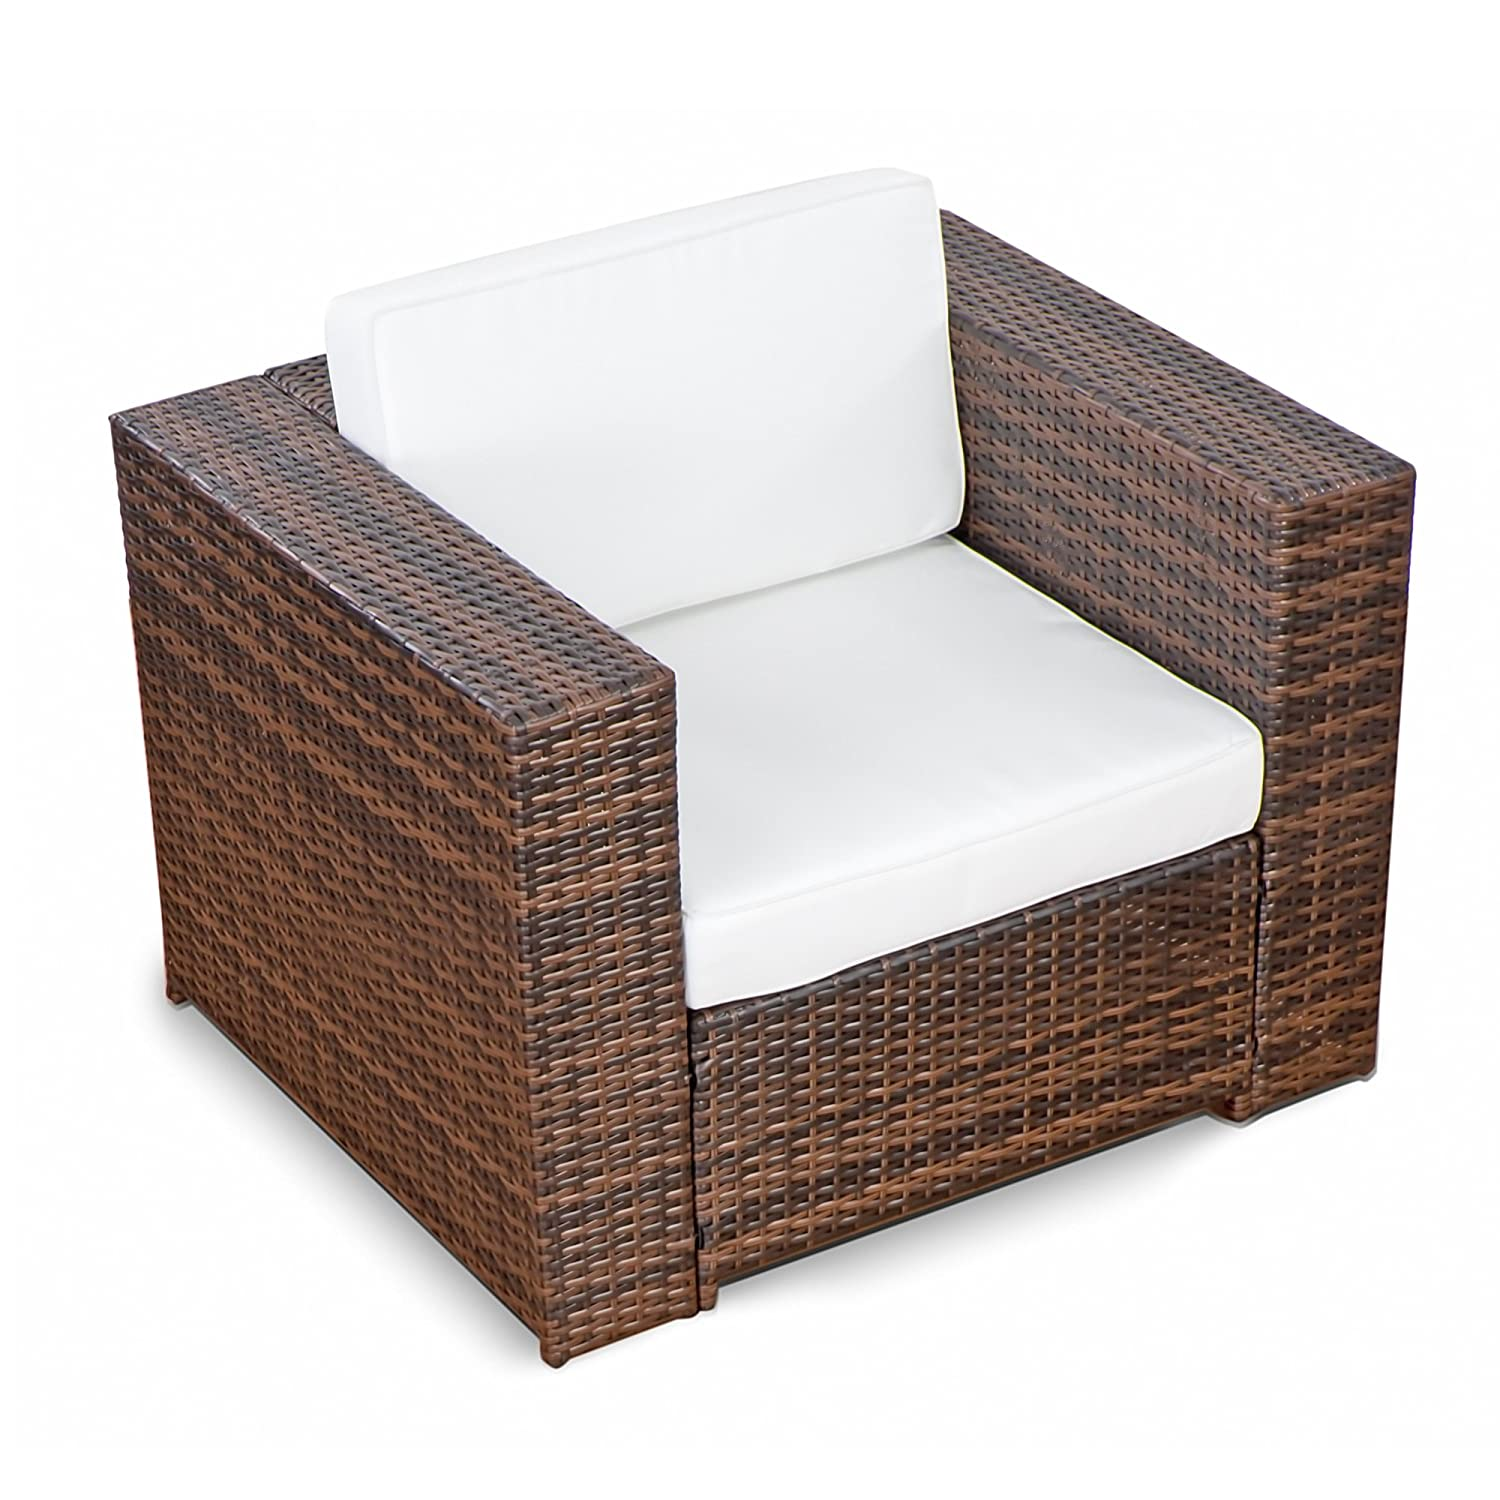 Lounge sofa rattan  Amazon.de: XINRO (1er) Premium Lounge Sessel - Lounge Sofa ...